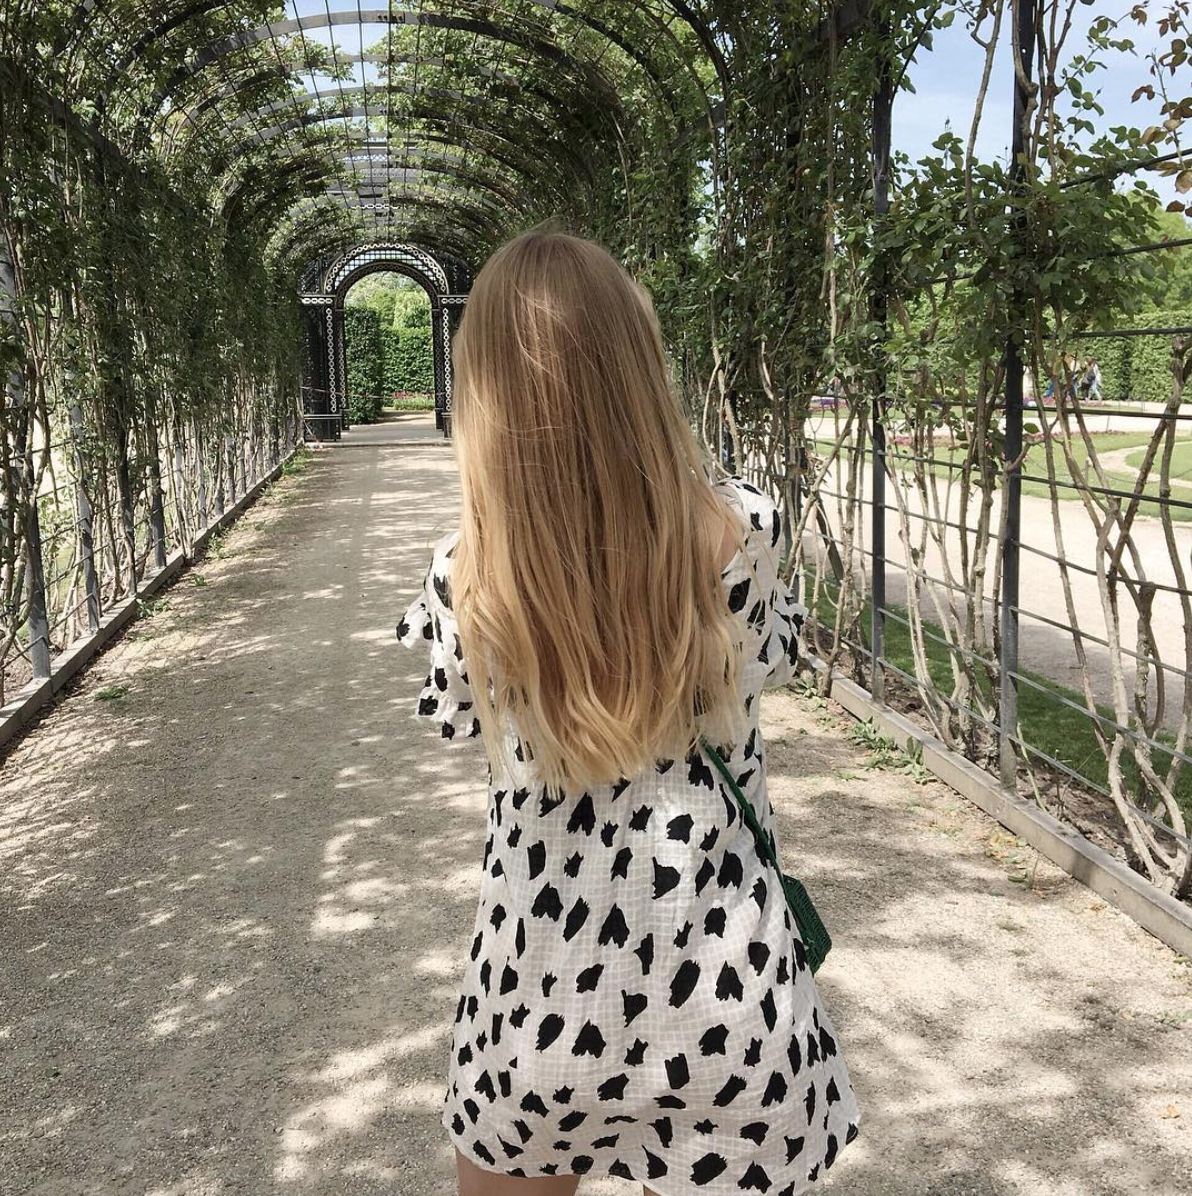 Walking into the weekend...🍃 #tgif #weekendmode #vienna